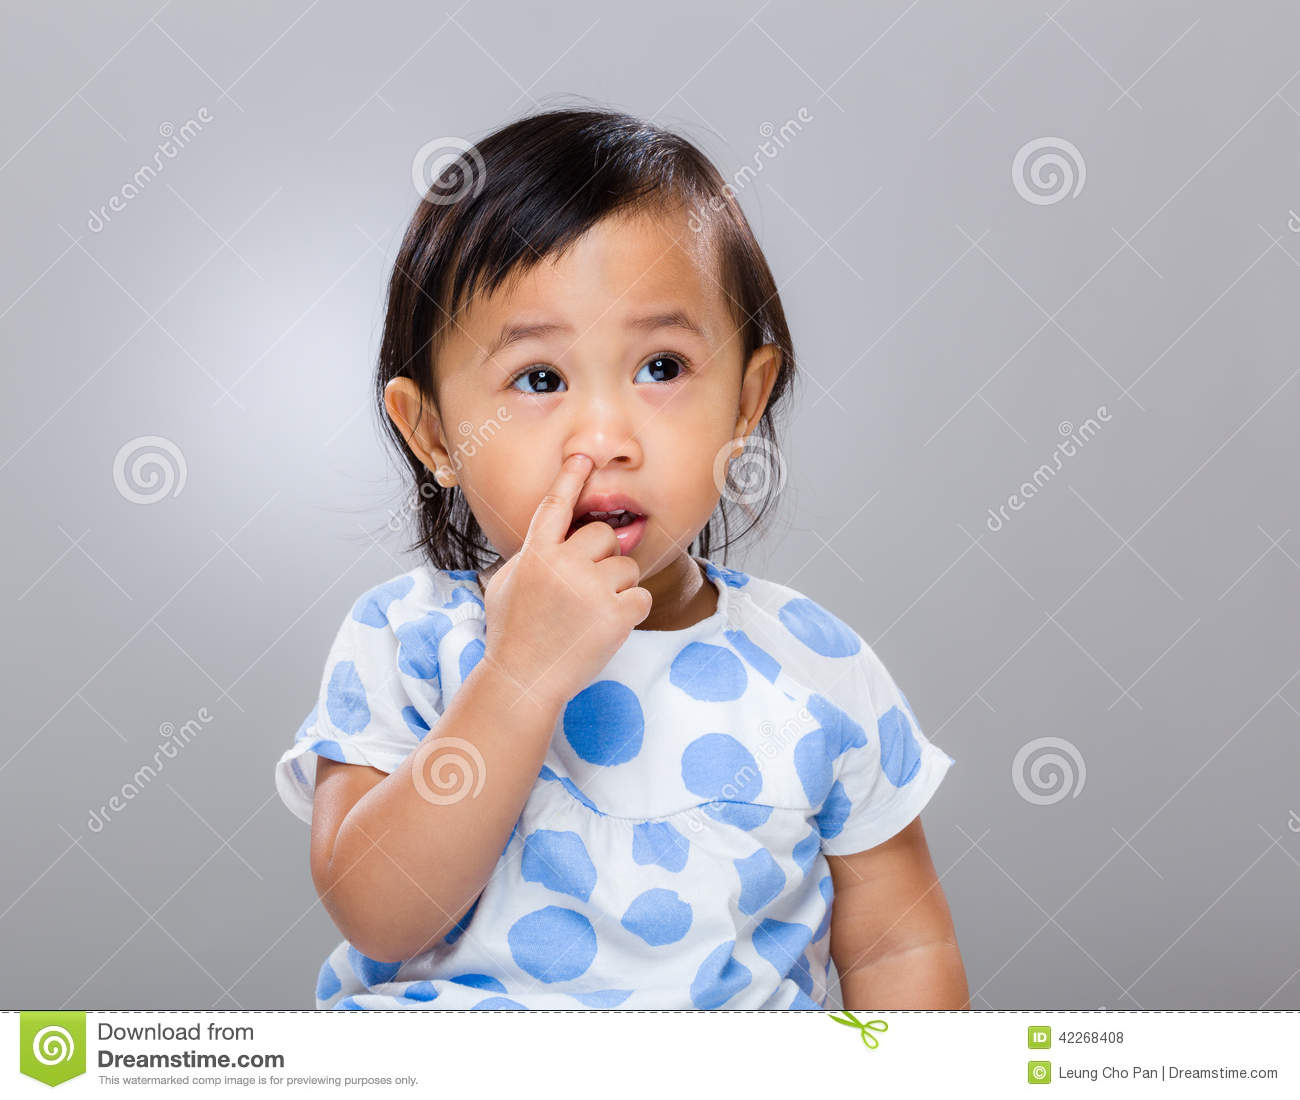 baby girl pick nose stock photo. image of childhood, confuse - 42268408